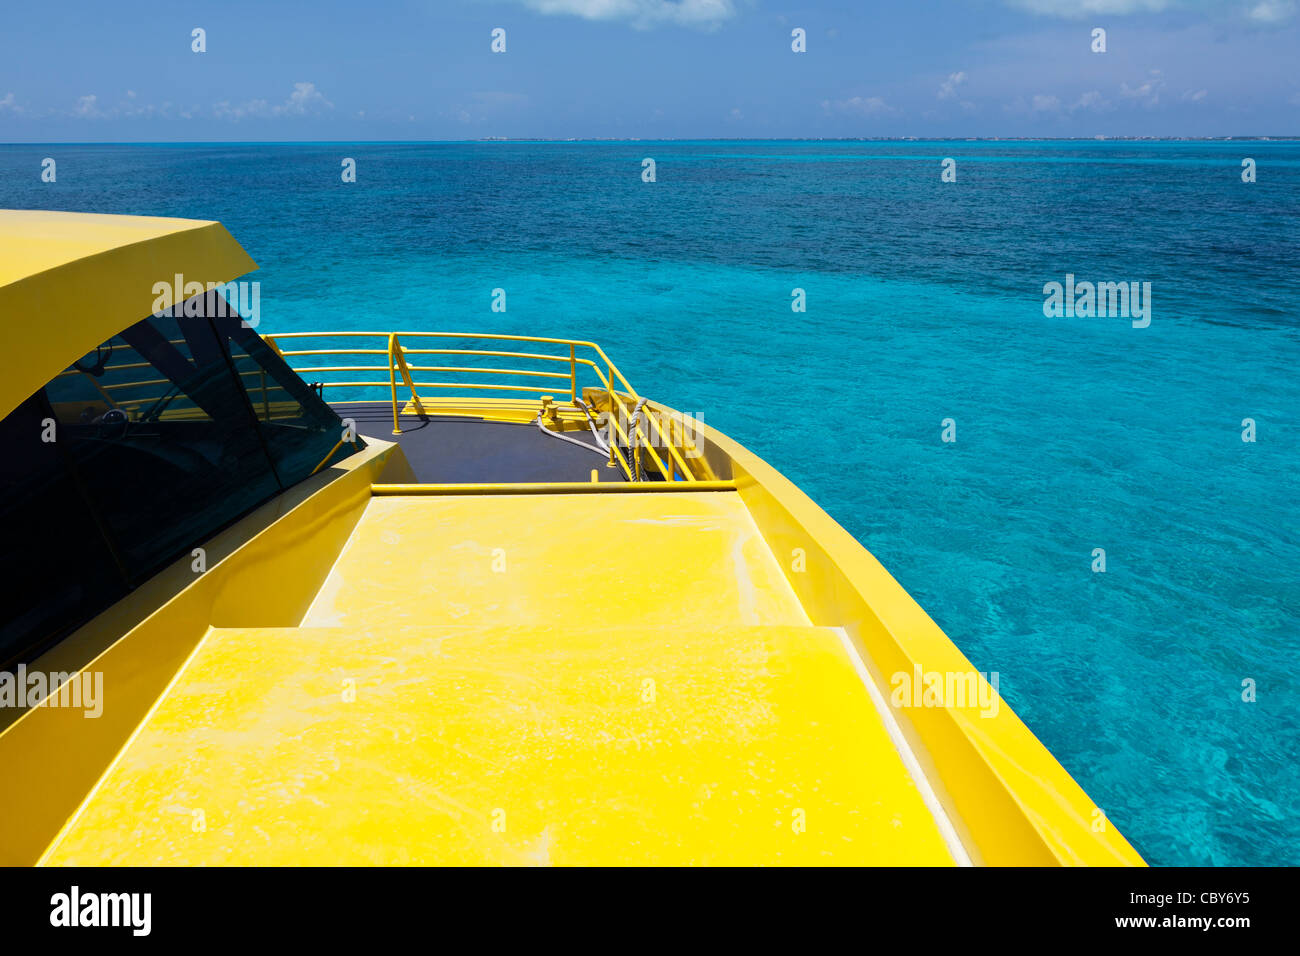 View of the ocean from the deck of a bright yellow boat - Stock Image